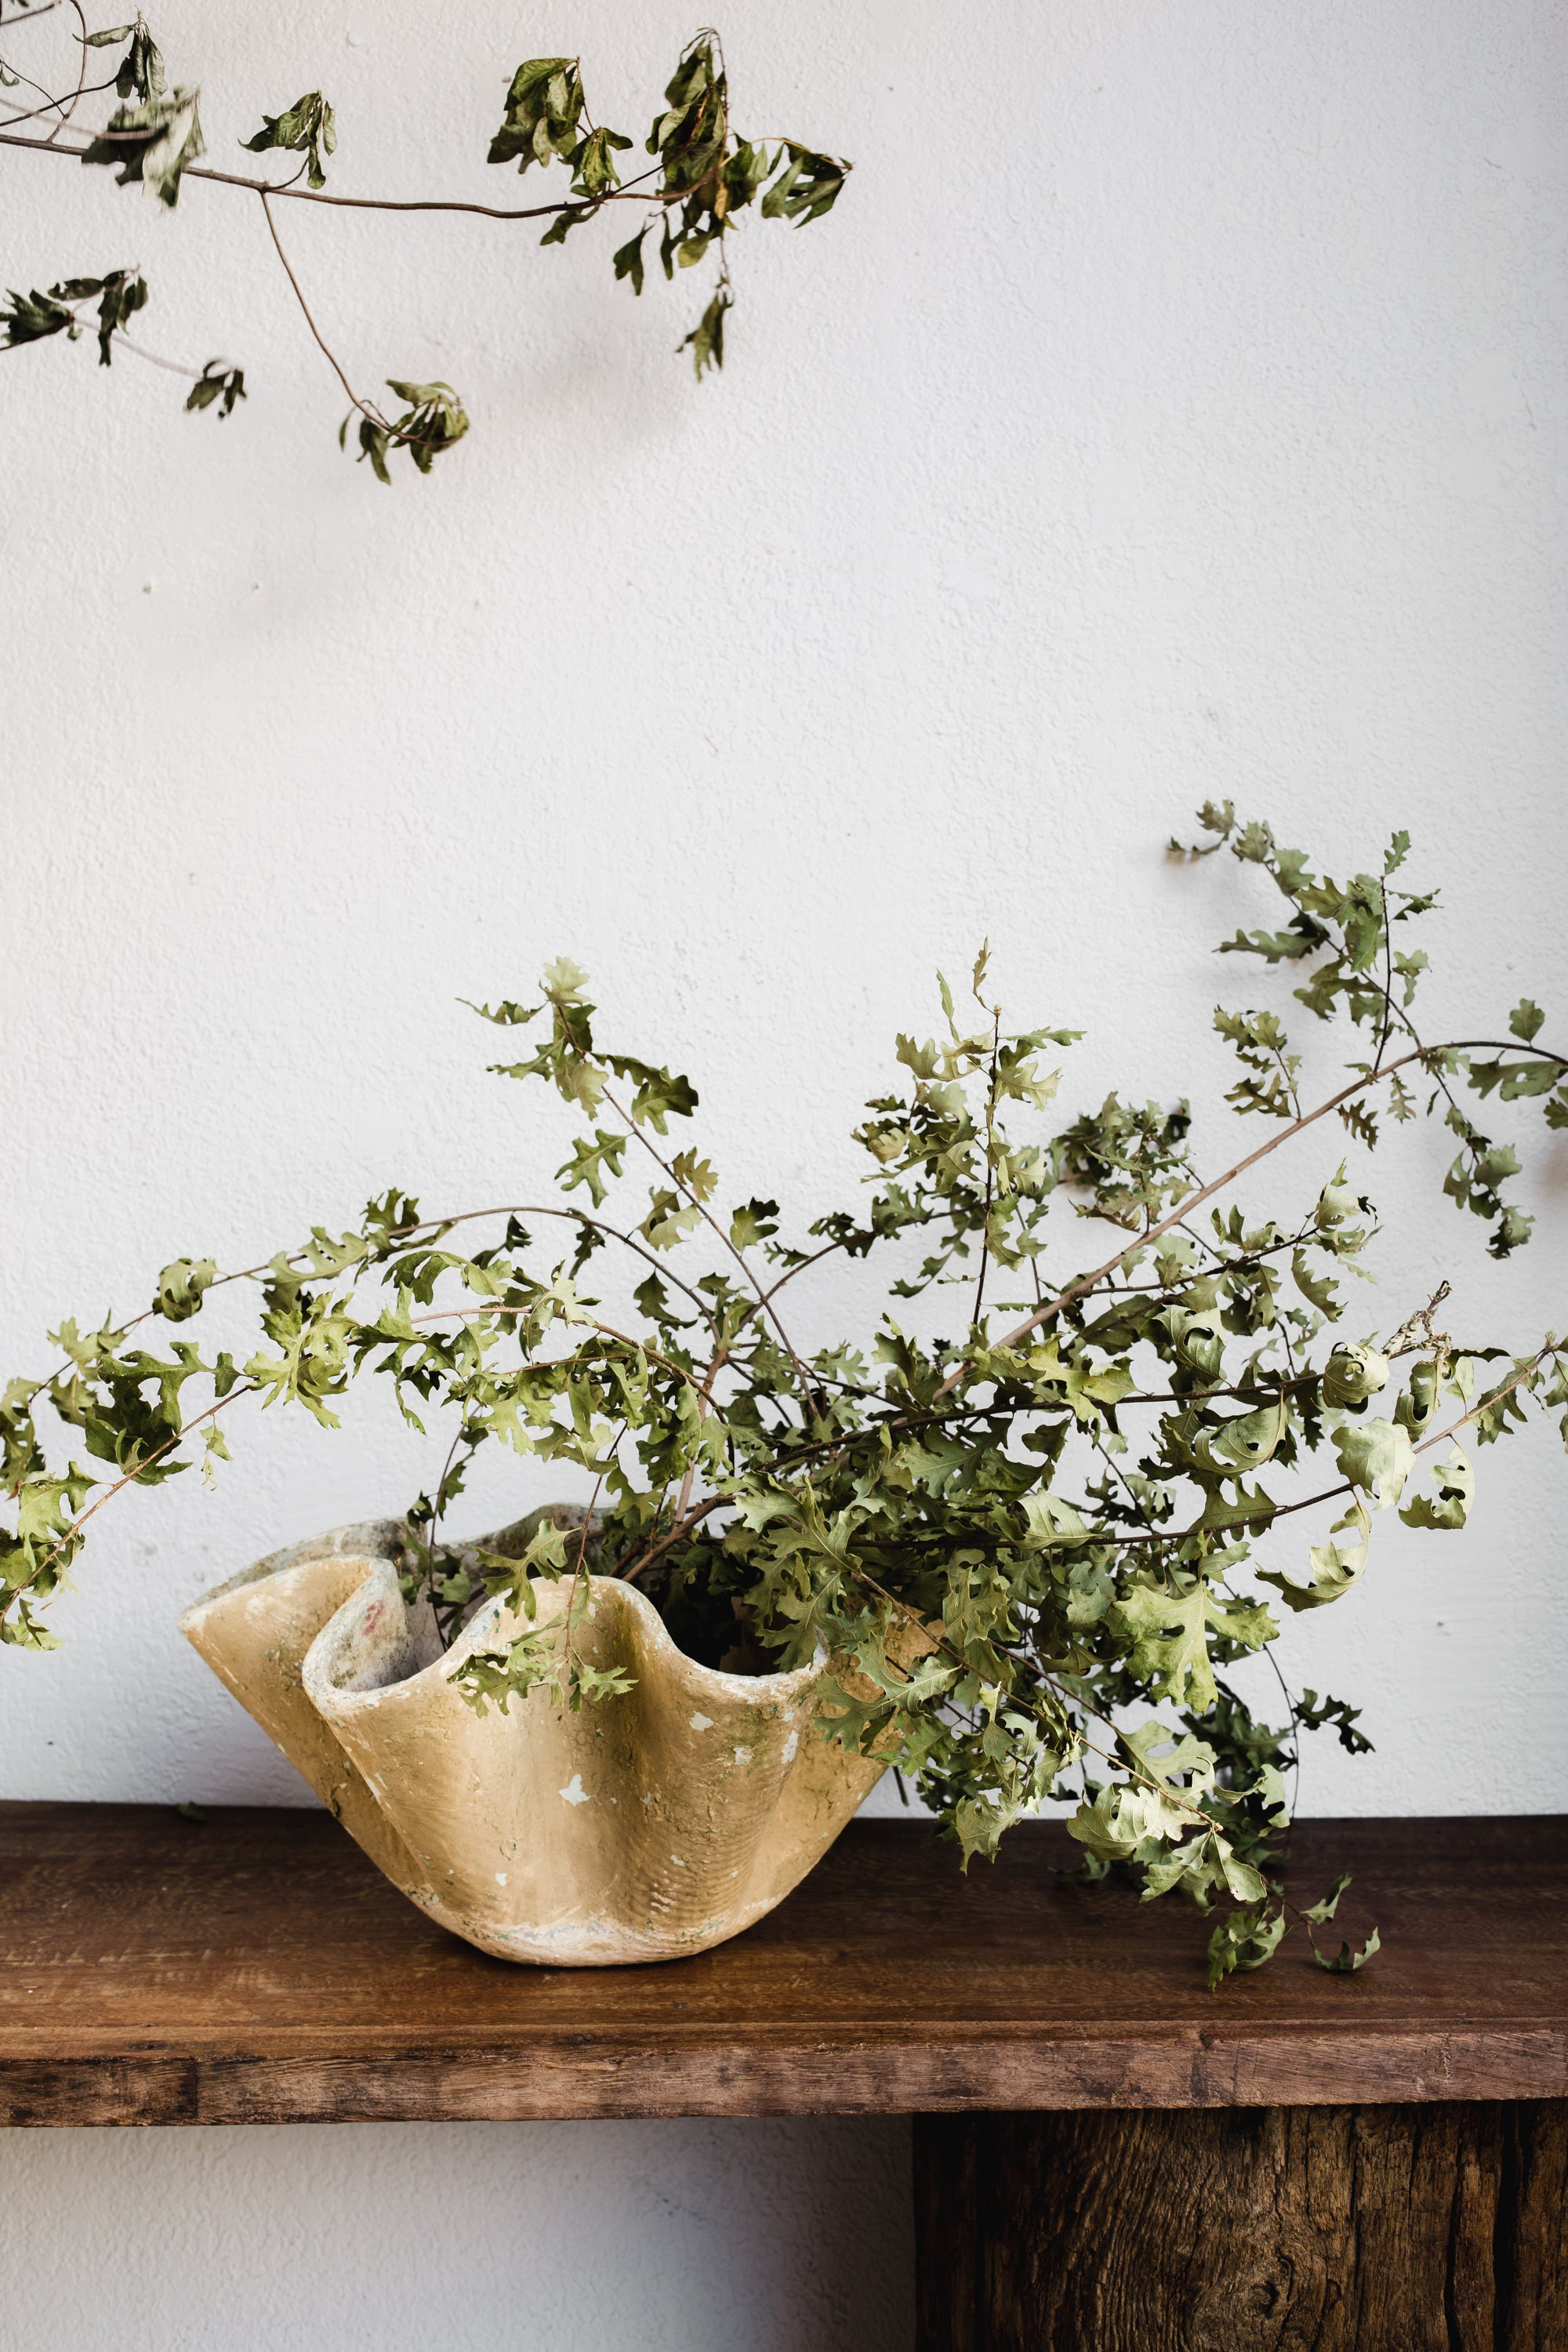 Grand Scalloped Edge Planter